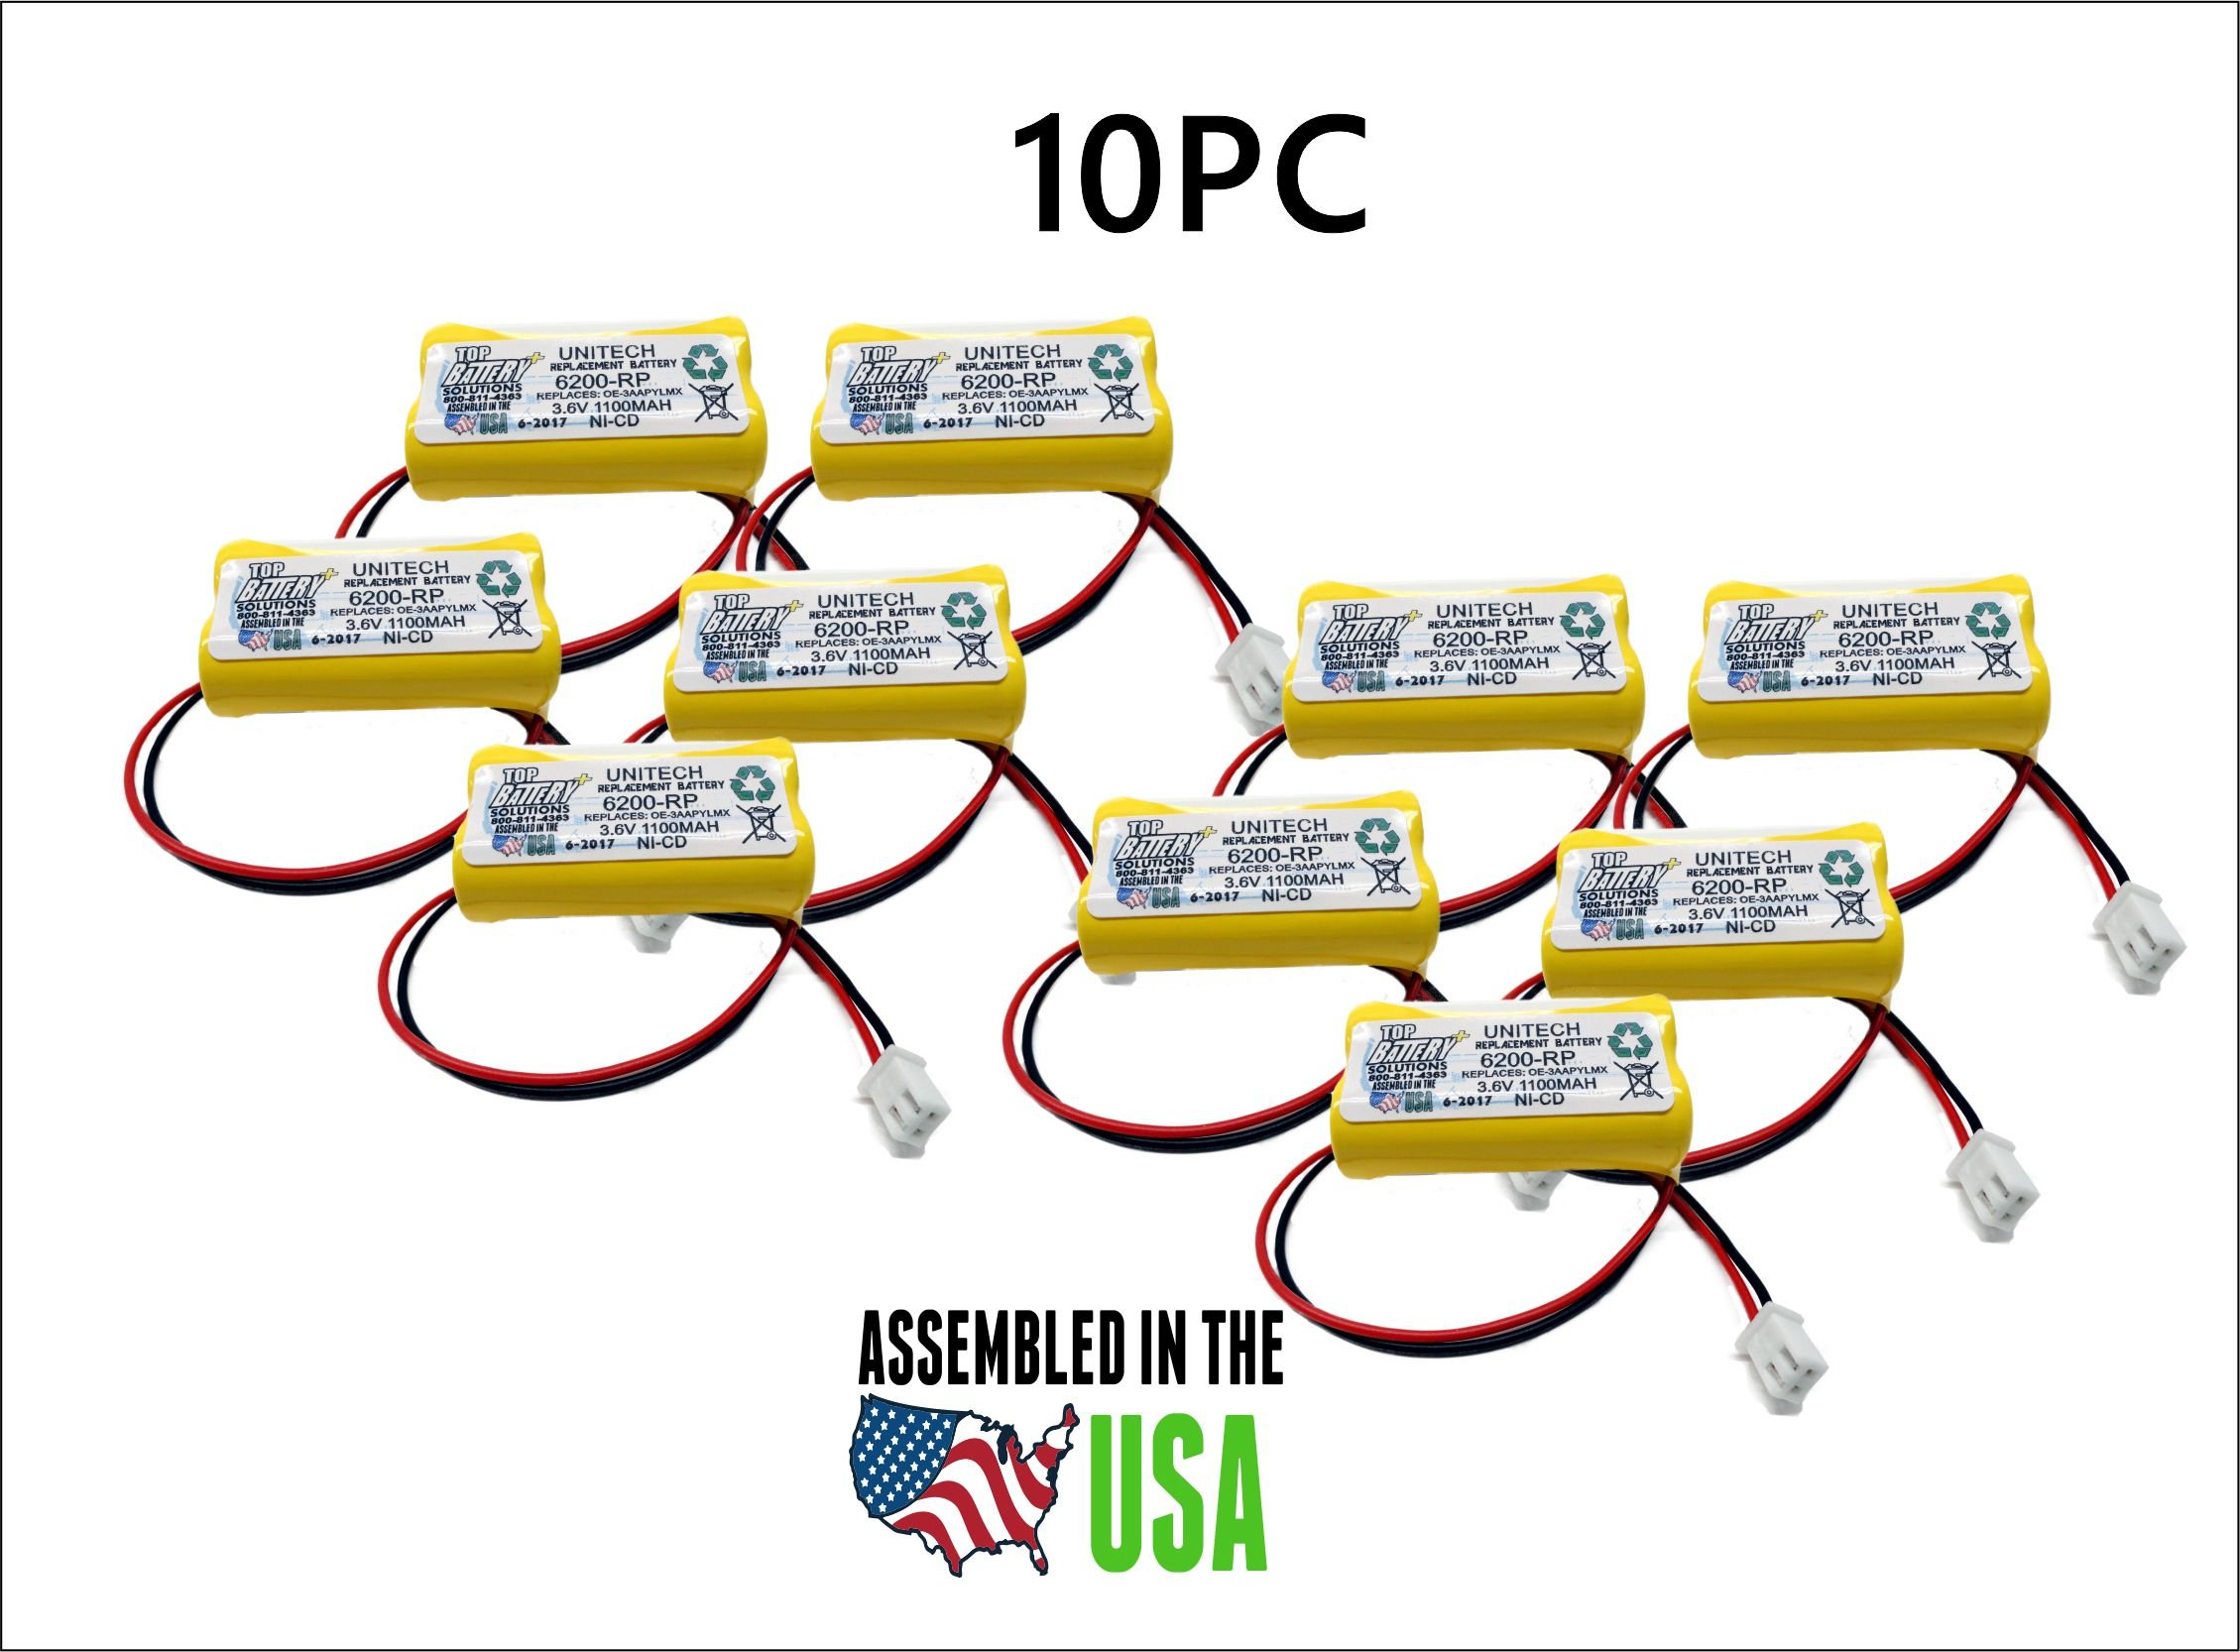 10PC UNITECH 6200RP,3.6V NICAD BATTERY REPLACEMENT